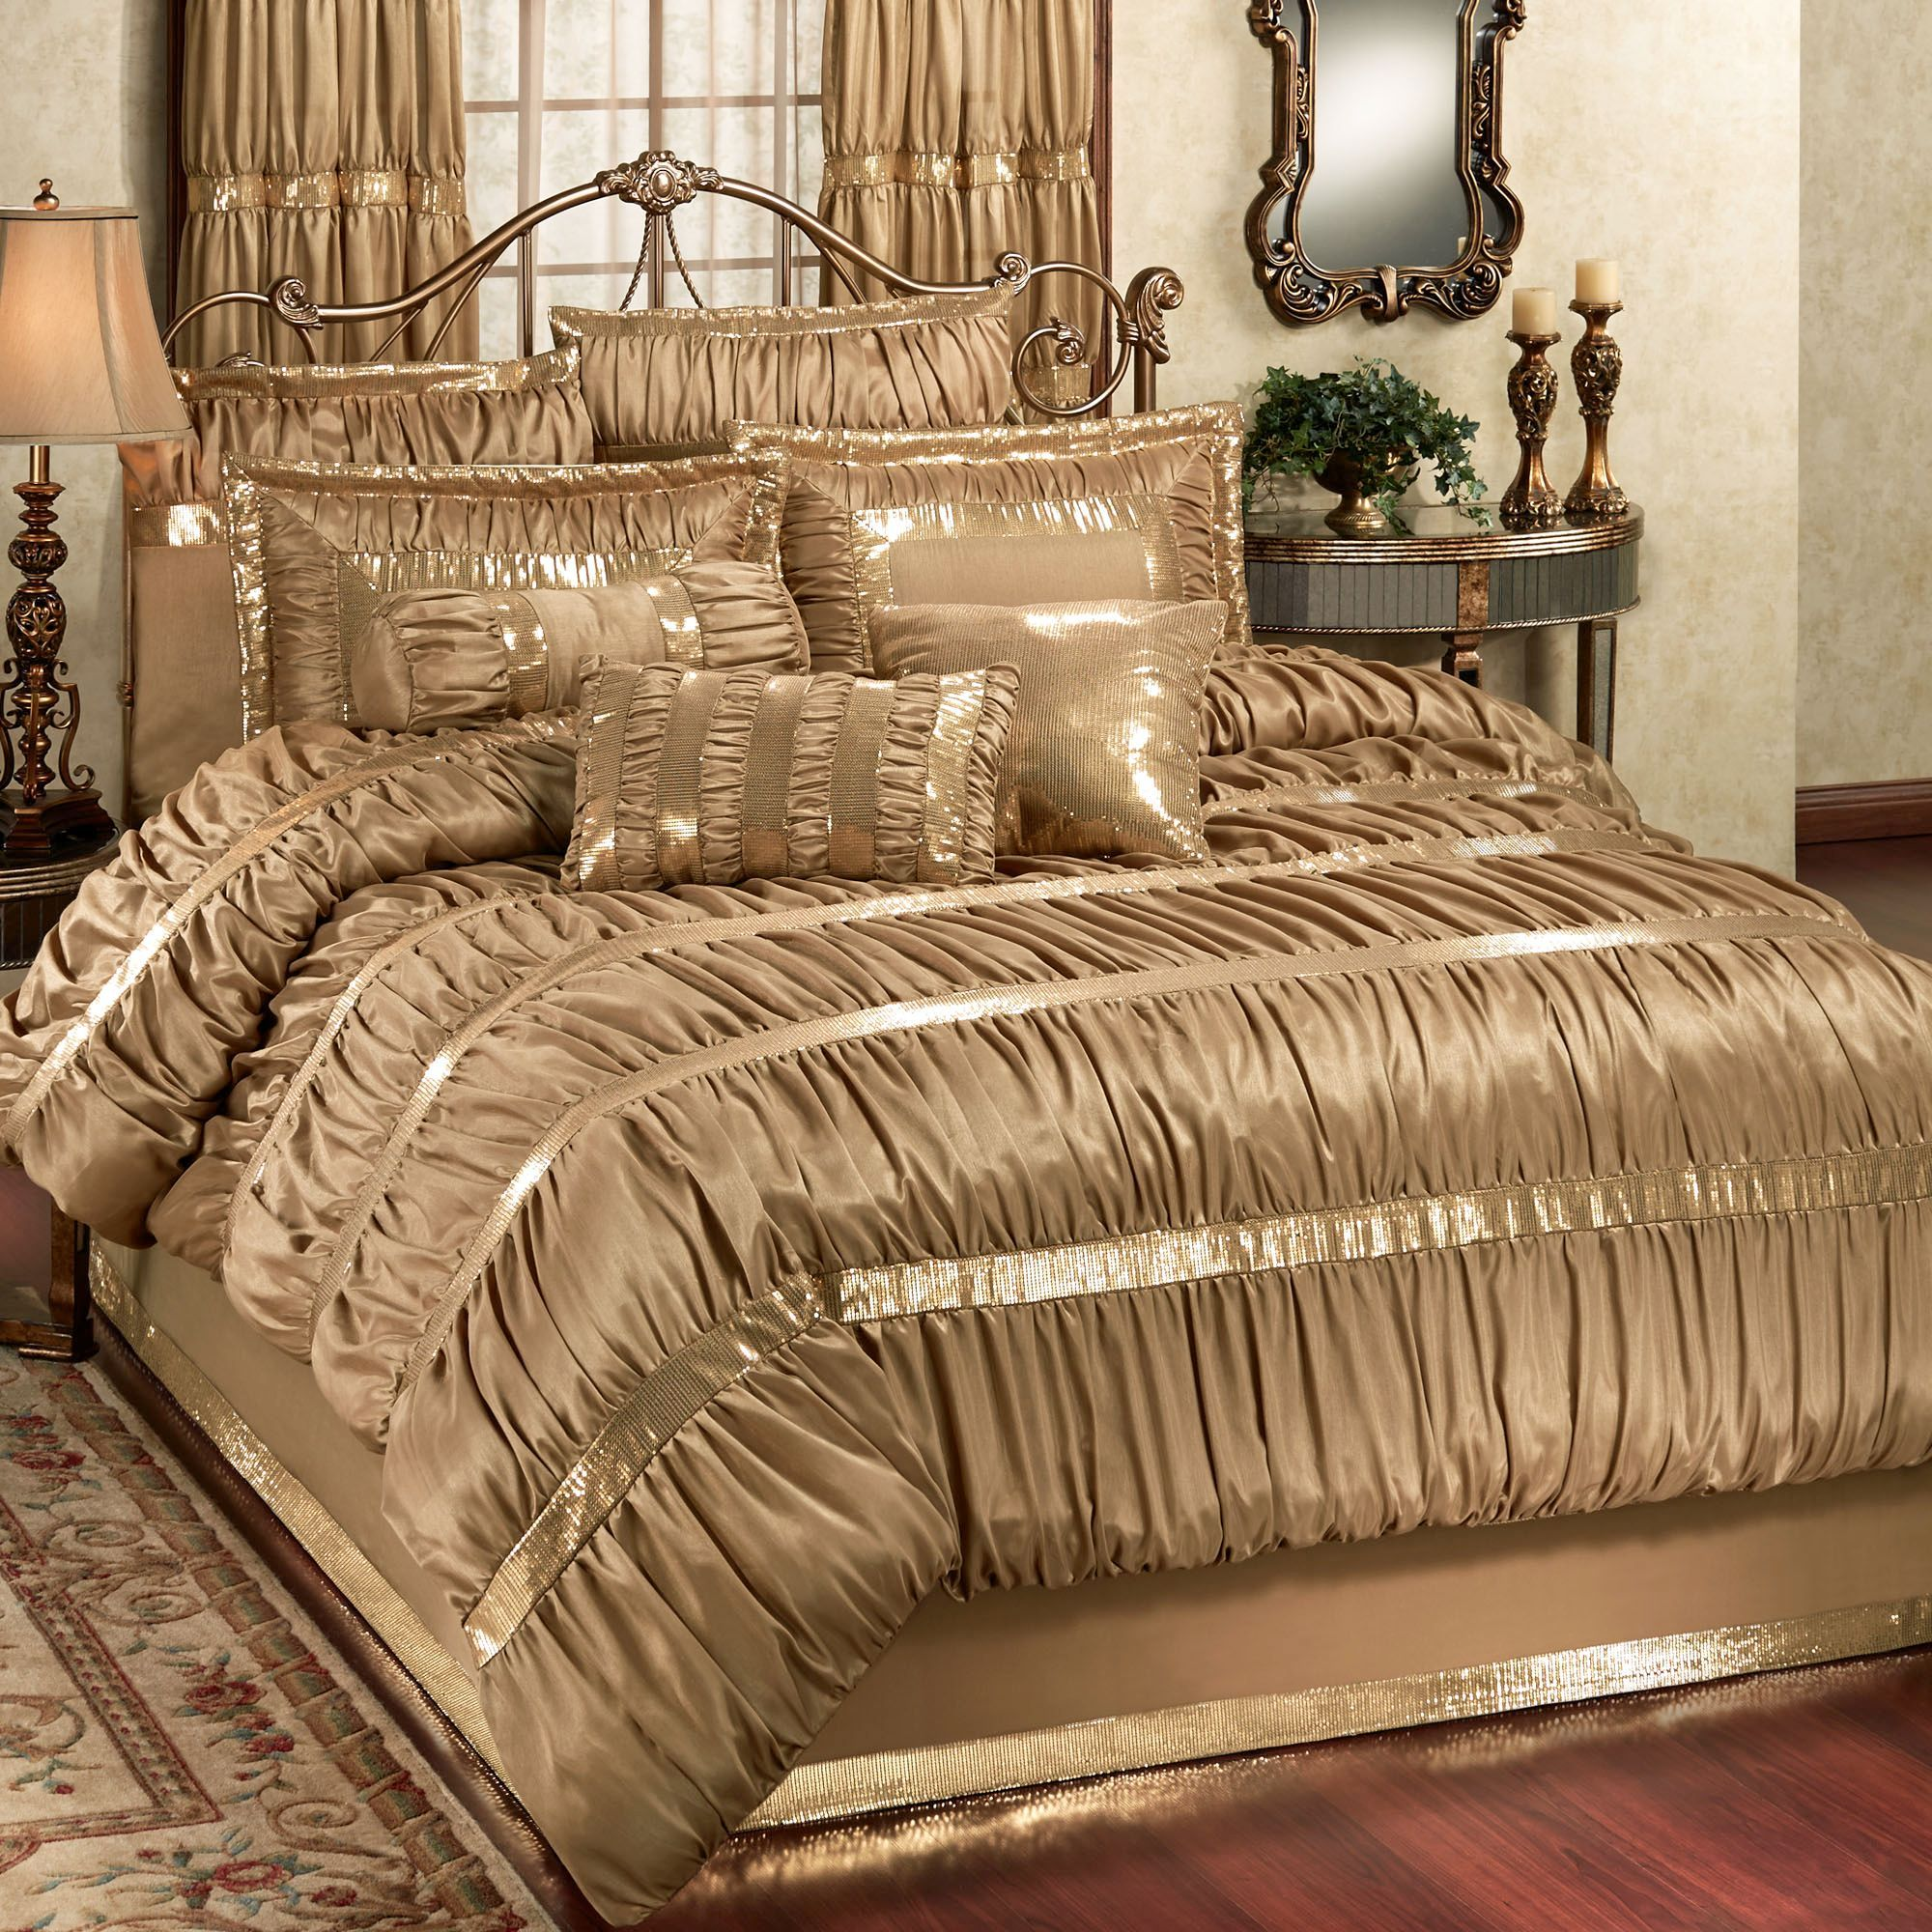 comforters home tan bedding microsuede chocolate hei bed qlt wid cannon set micro prod comforter piece p bath suede